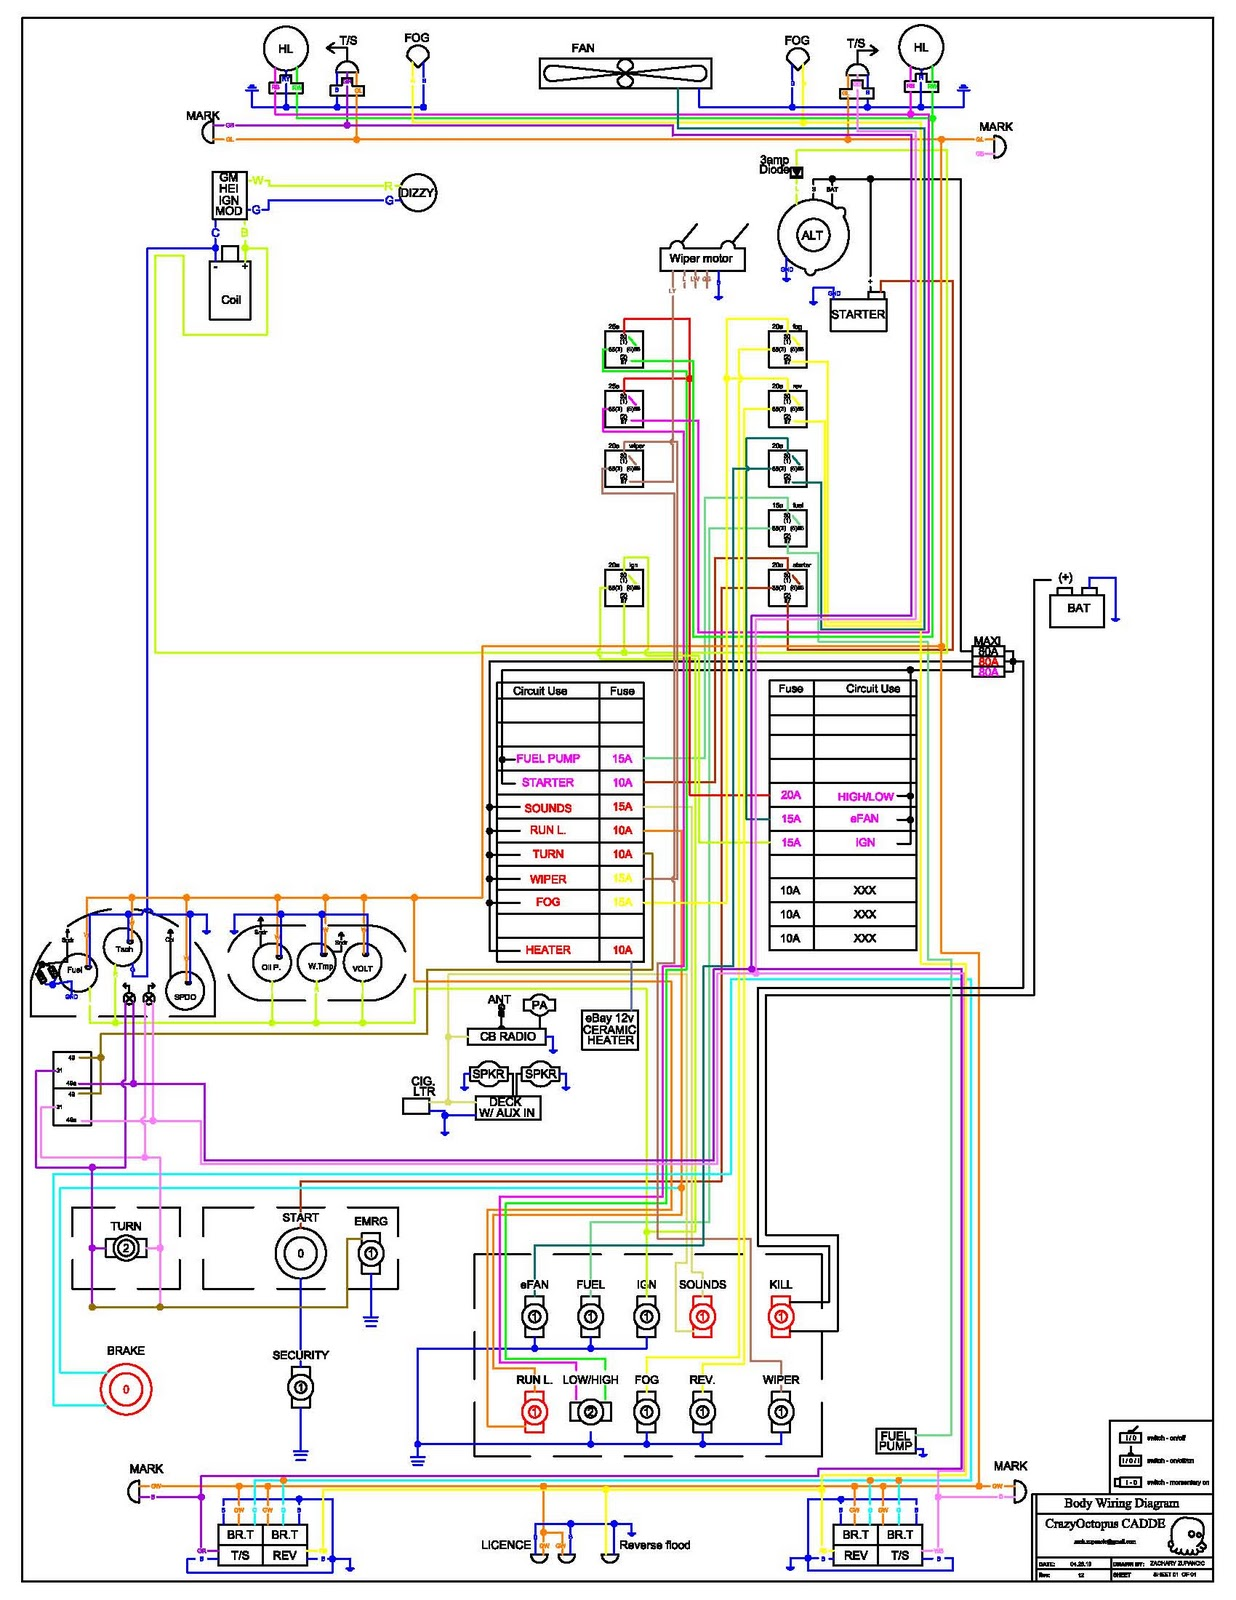 240z+wiring+r12 datsun 240z wiring diagram 71 240z wiring diagram \u2022 free wiring Fiero 350 Swap at cos-gaming.co